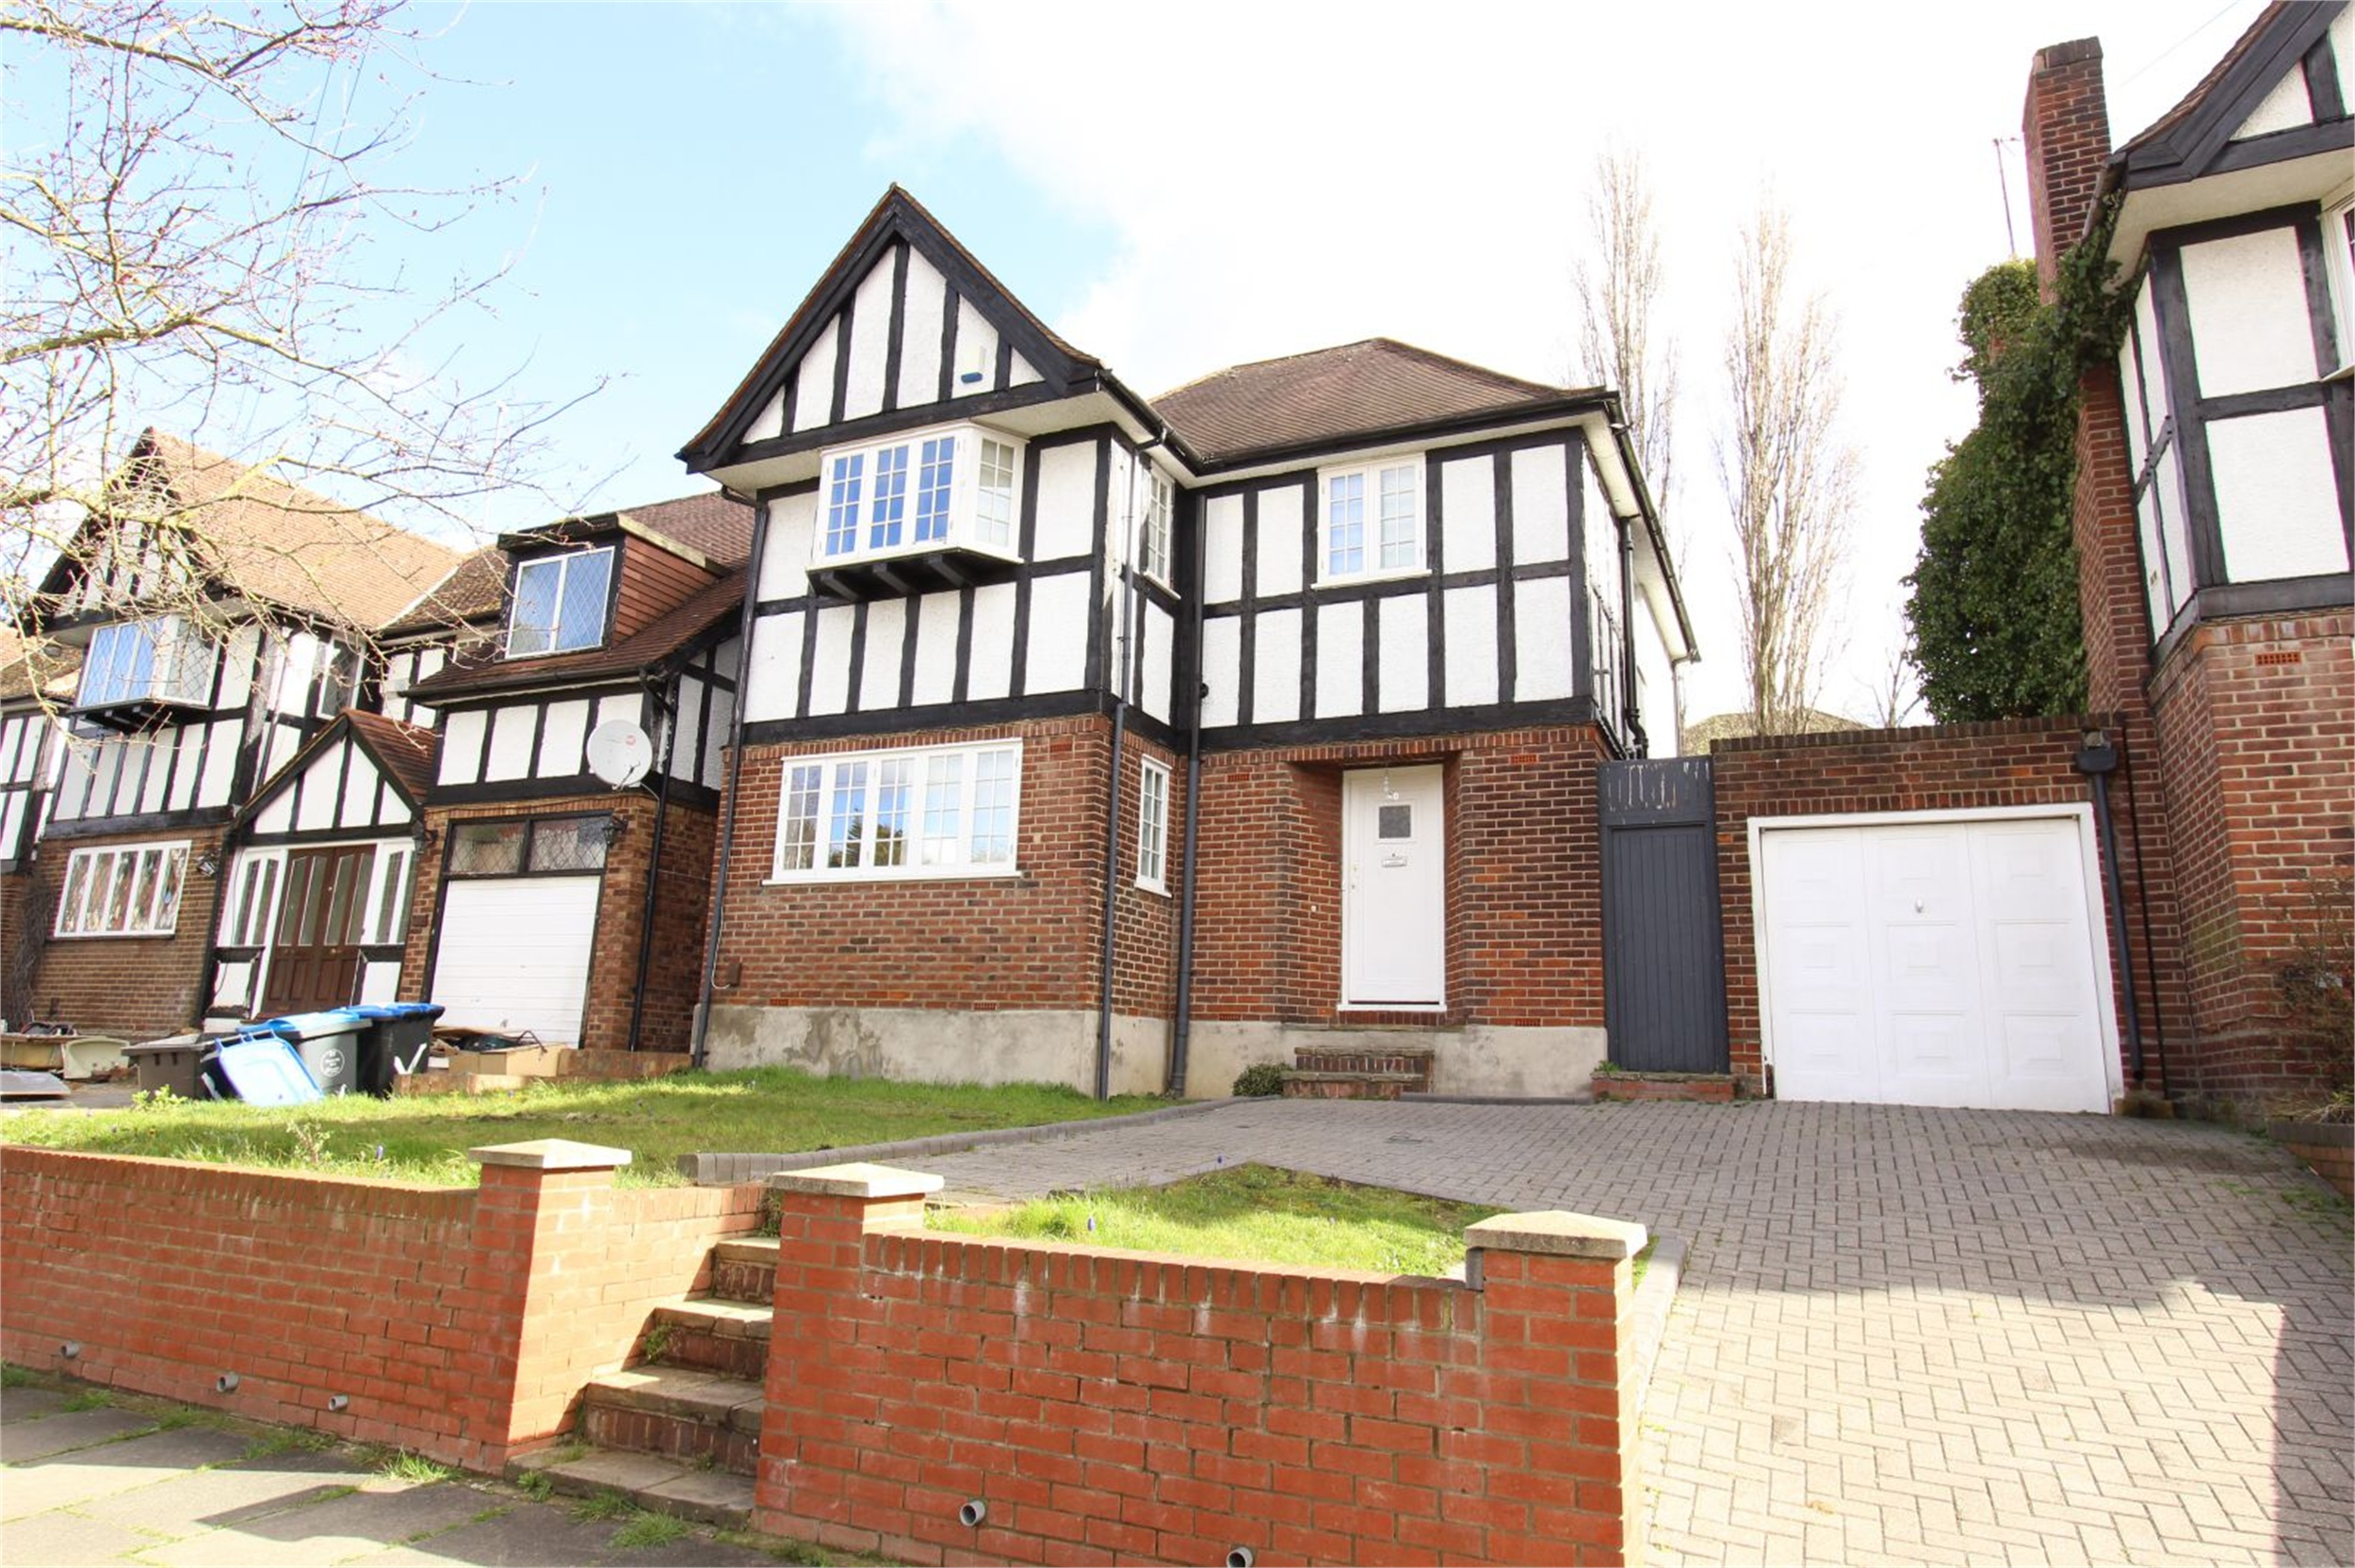 3 Bedrooms Detached House for sale in Barn Way Wembley Greater London HA9